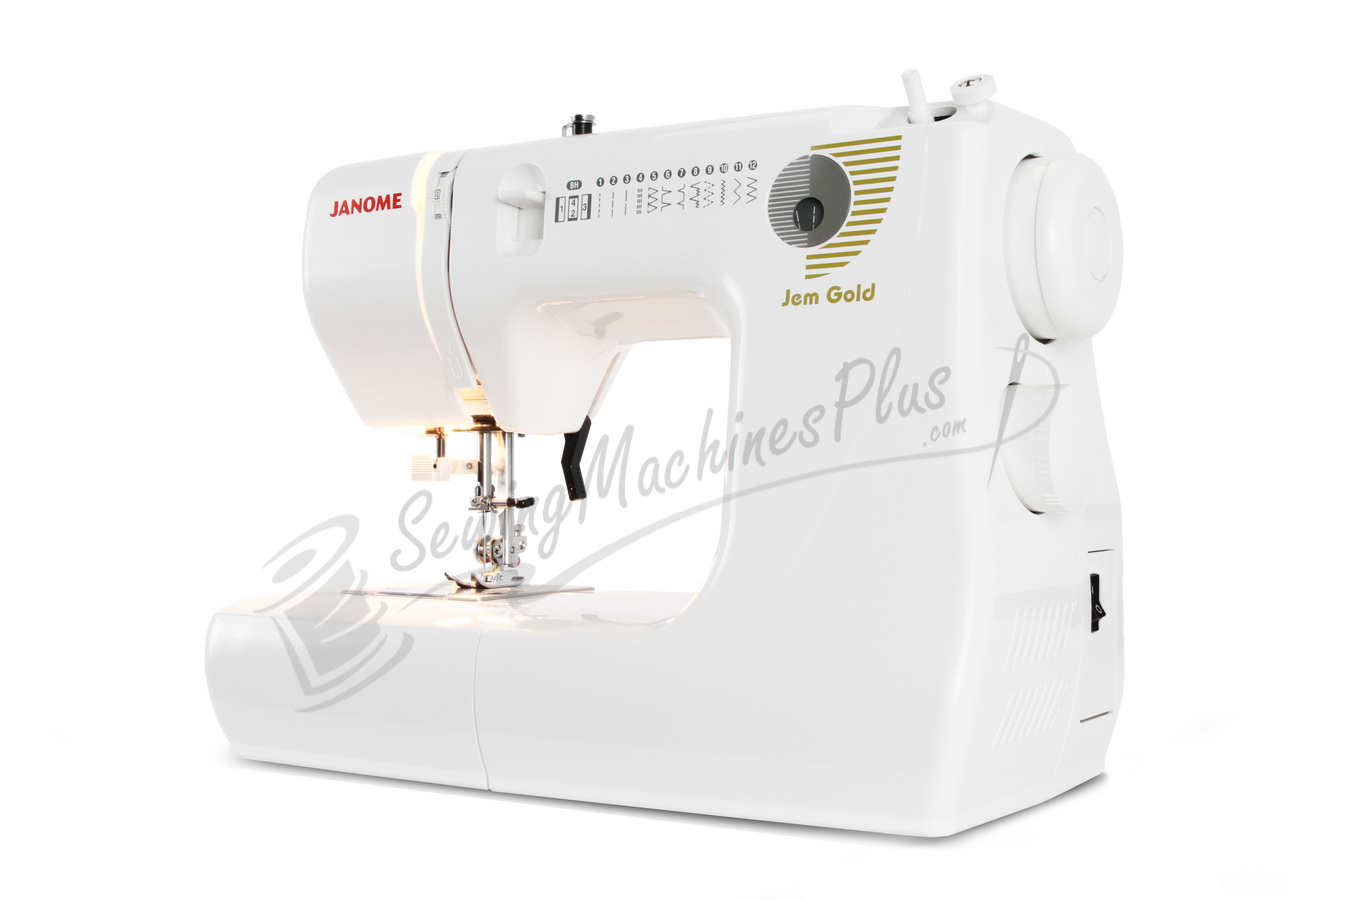 Janome Jem Gold 660 Sewing and Quilting Machine Refurbished